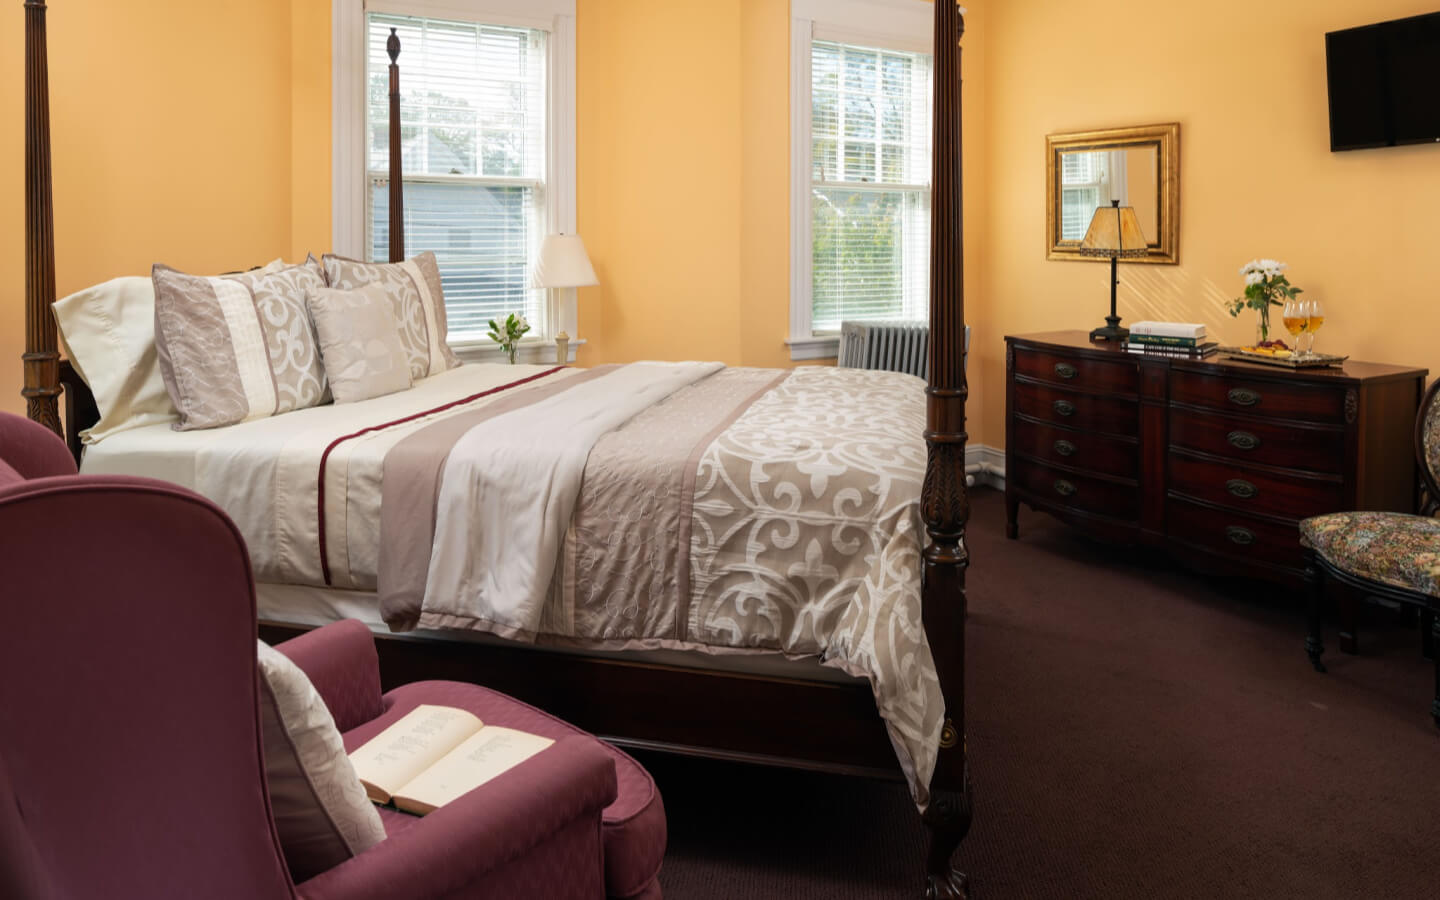 Room 2 - Edith Wharton Room bed at our Falmouth, MA bed and breakfast